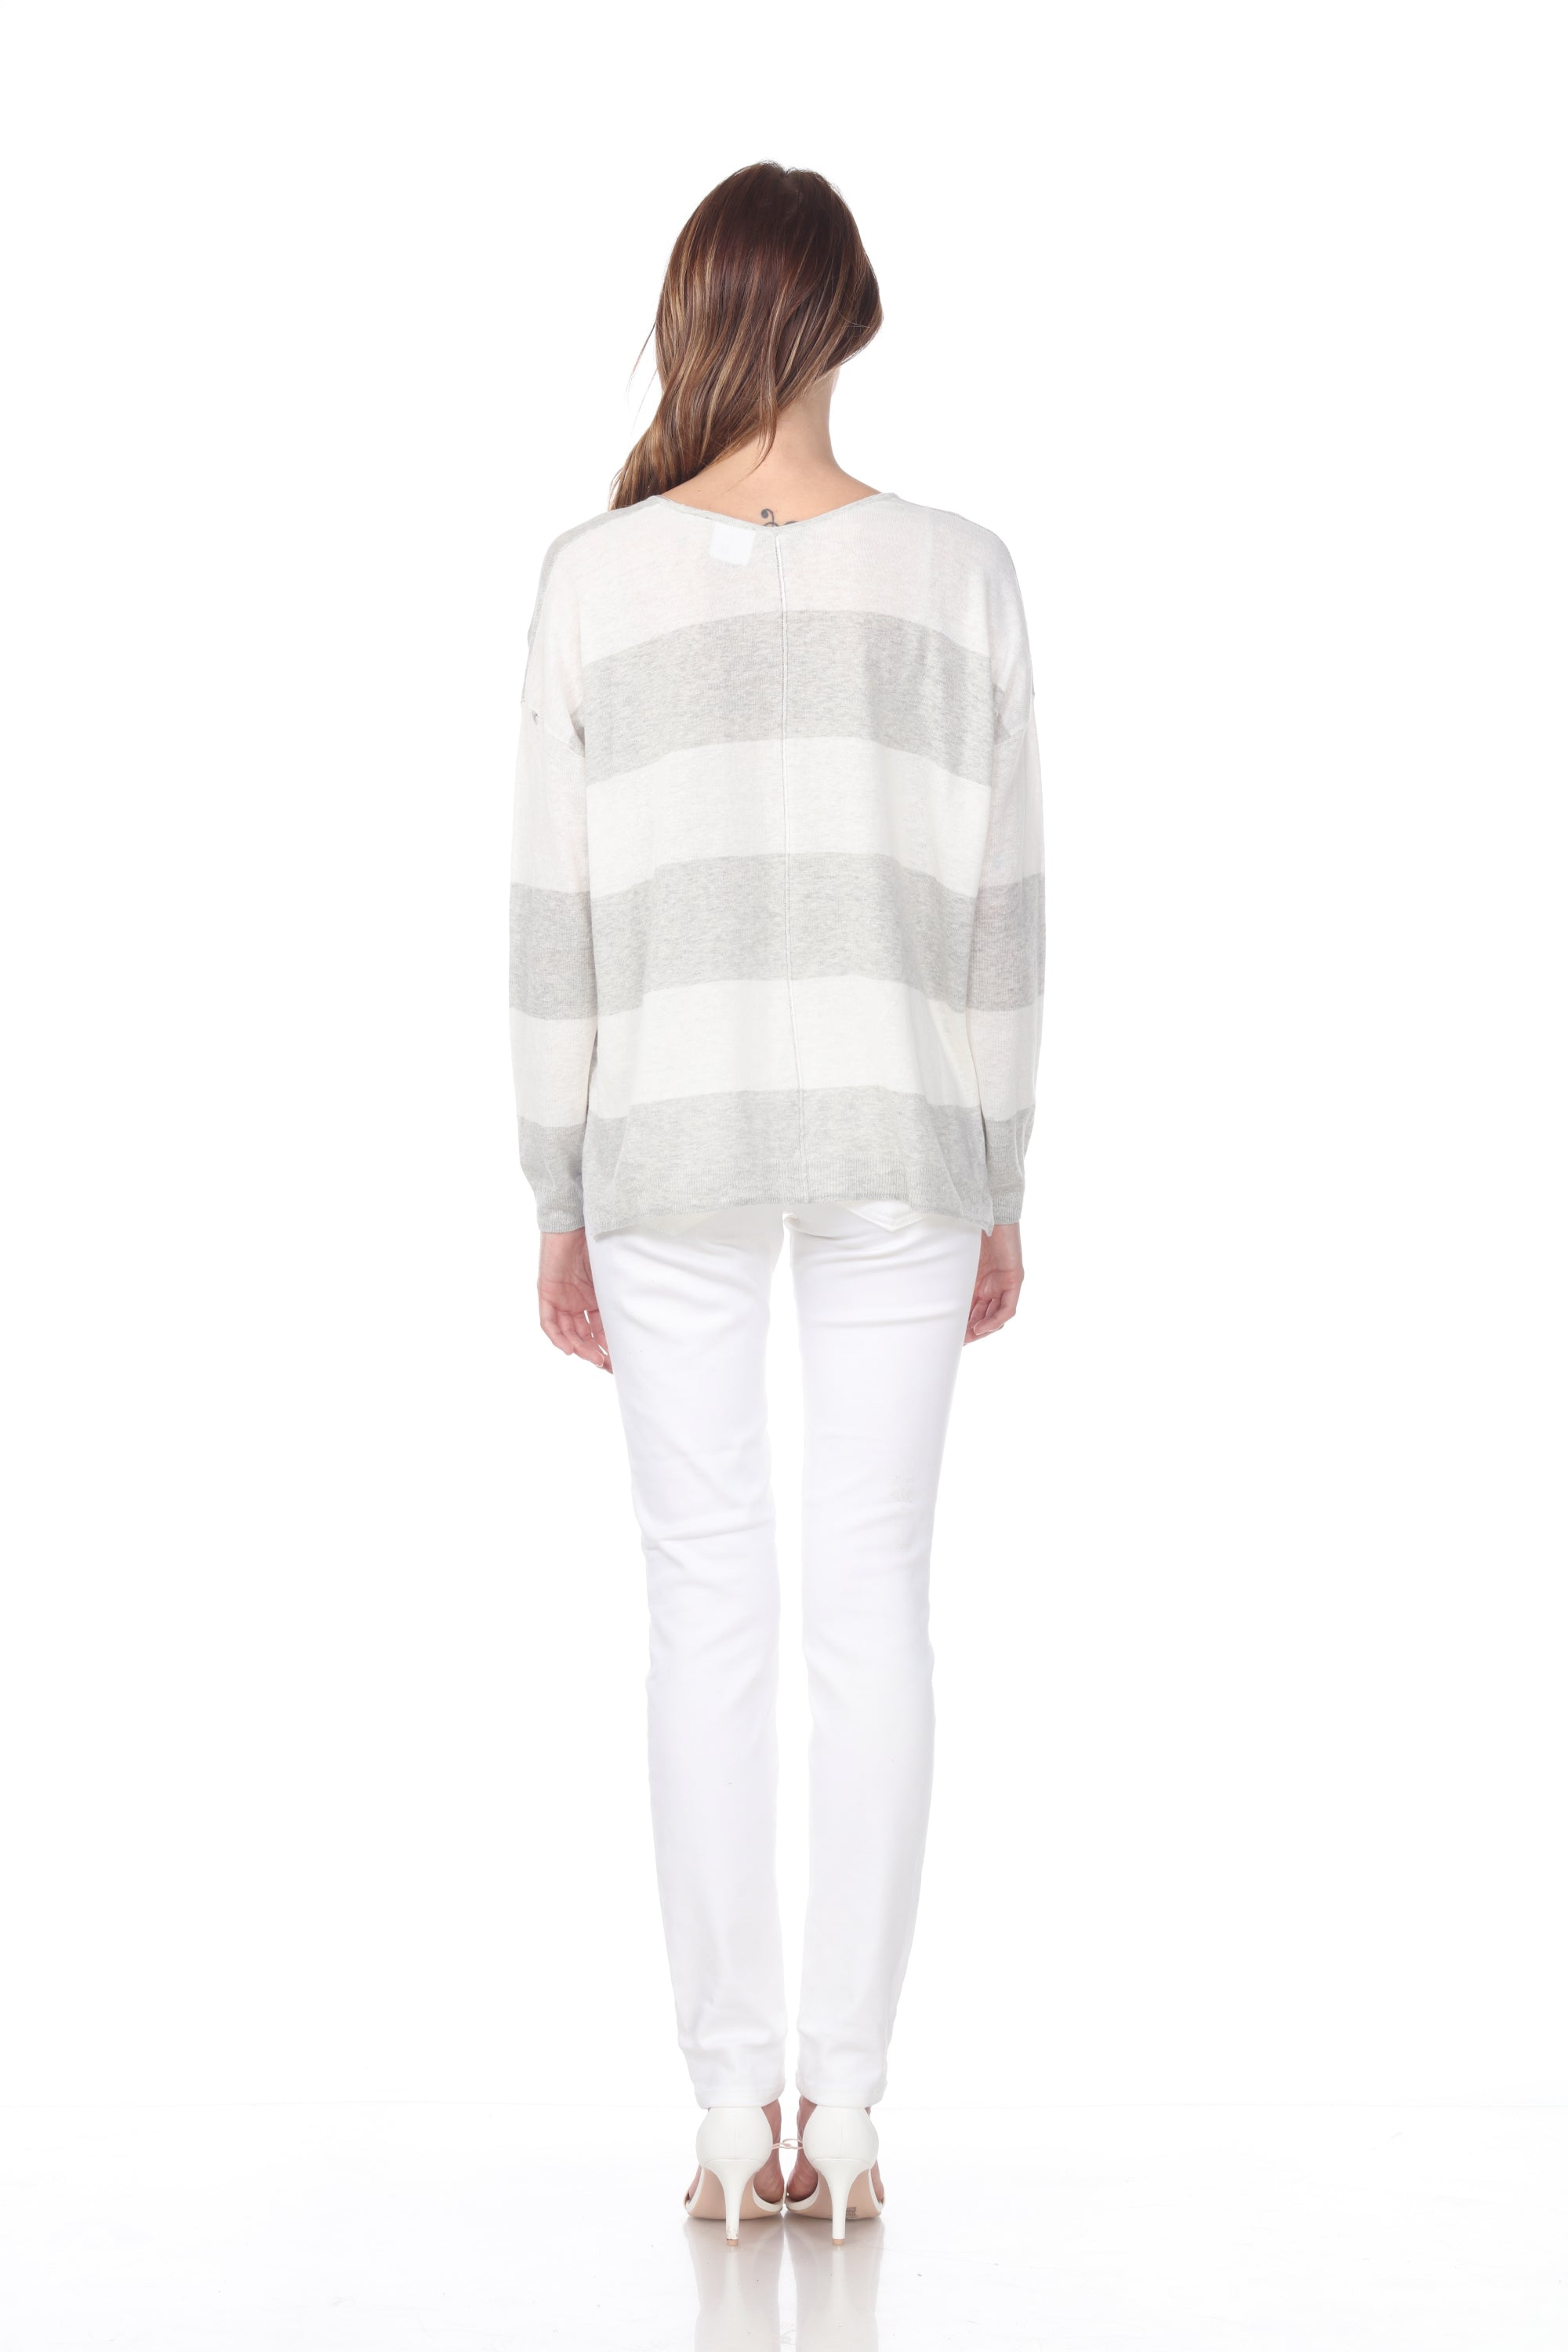 Linen blend v-neck striped sweater w pocket detail